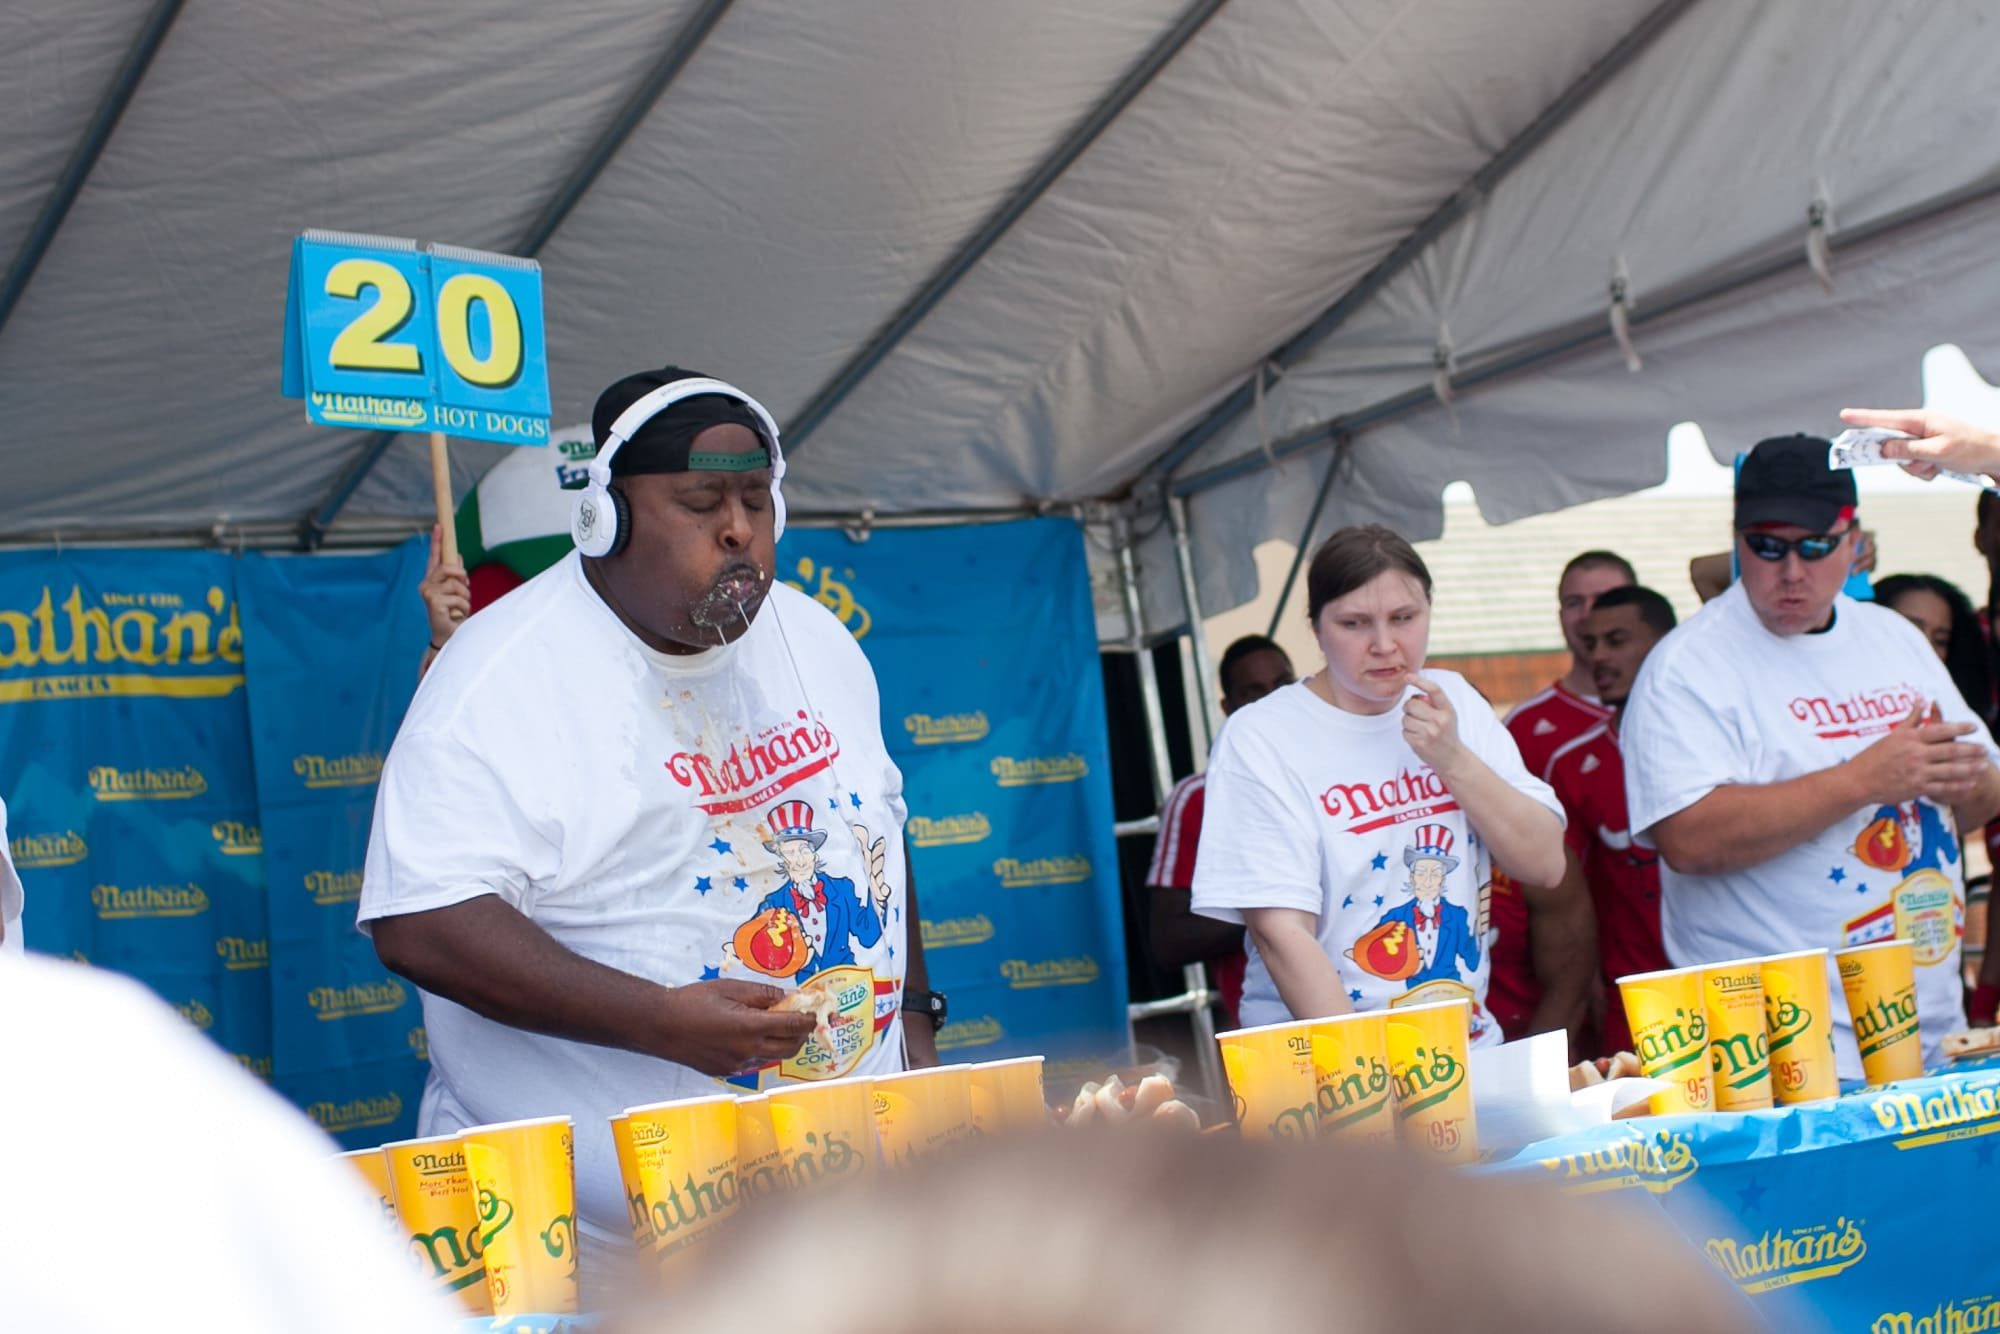 Competitive eaters at eat hot dogs at the hot dog eating contest at the Bloomingdale, Illinois, Kmart